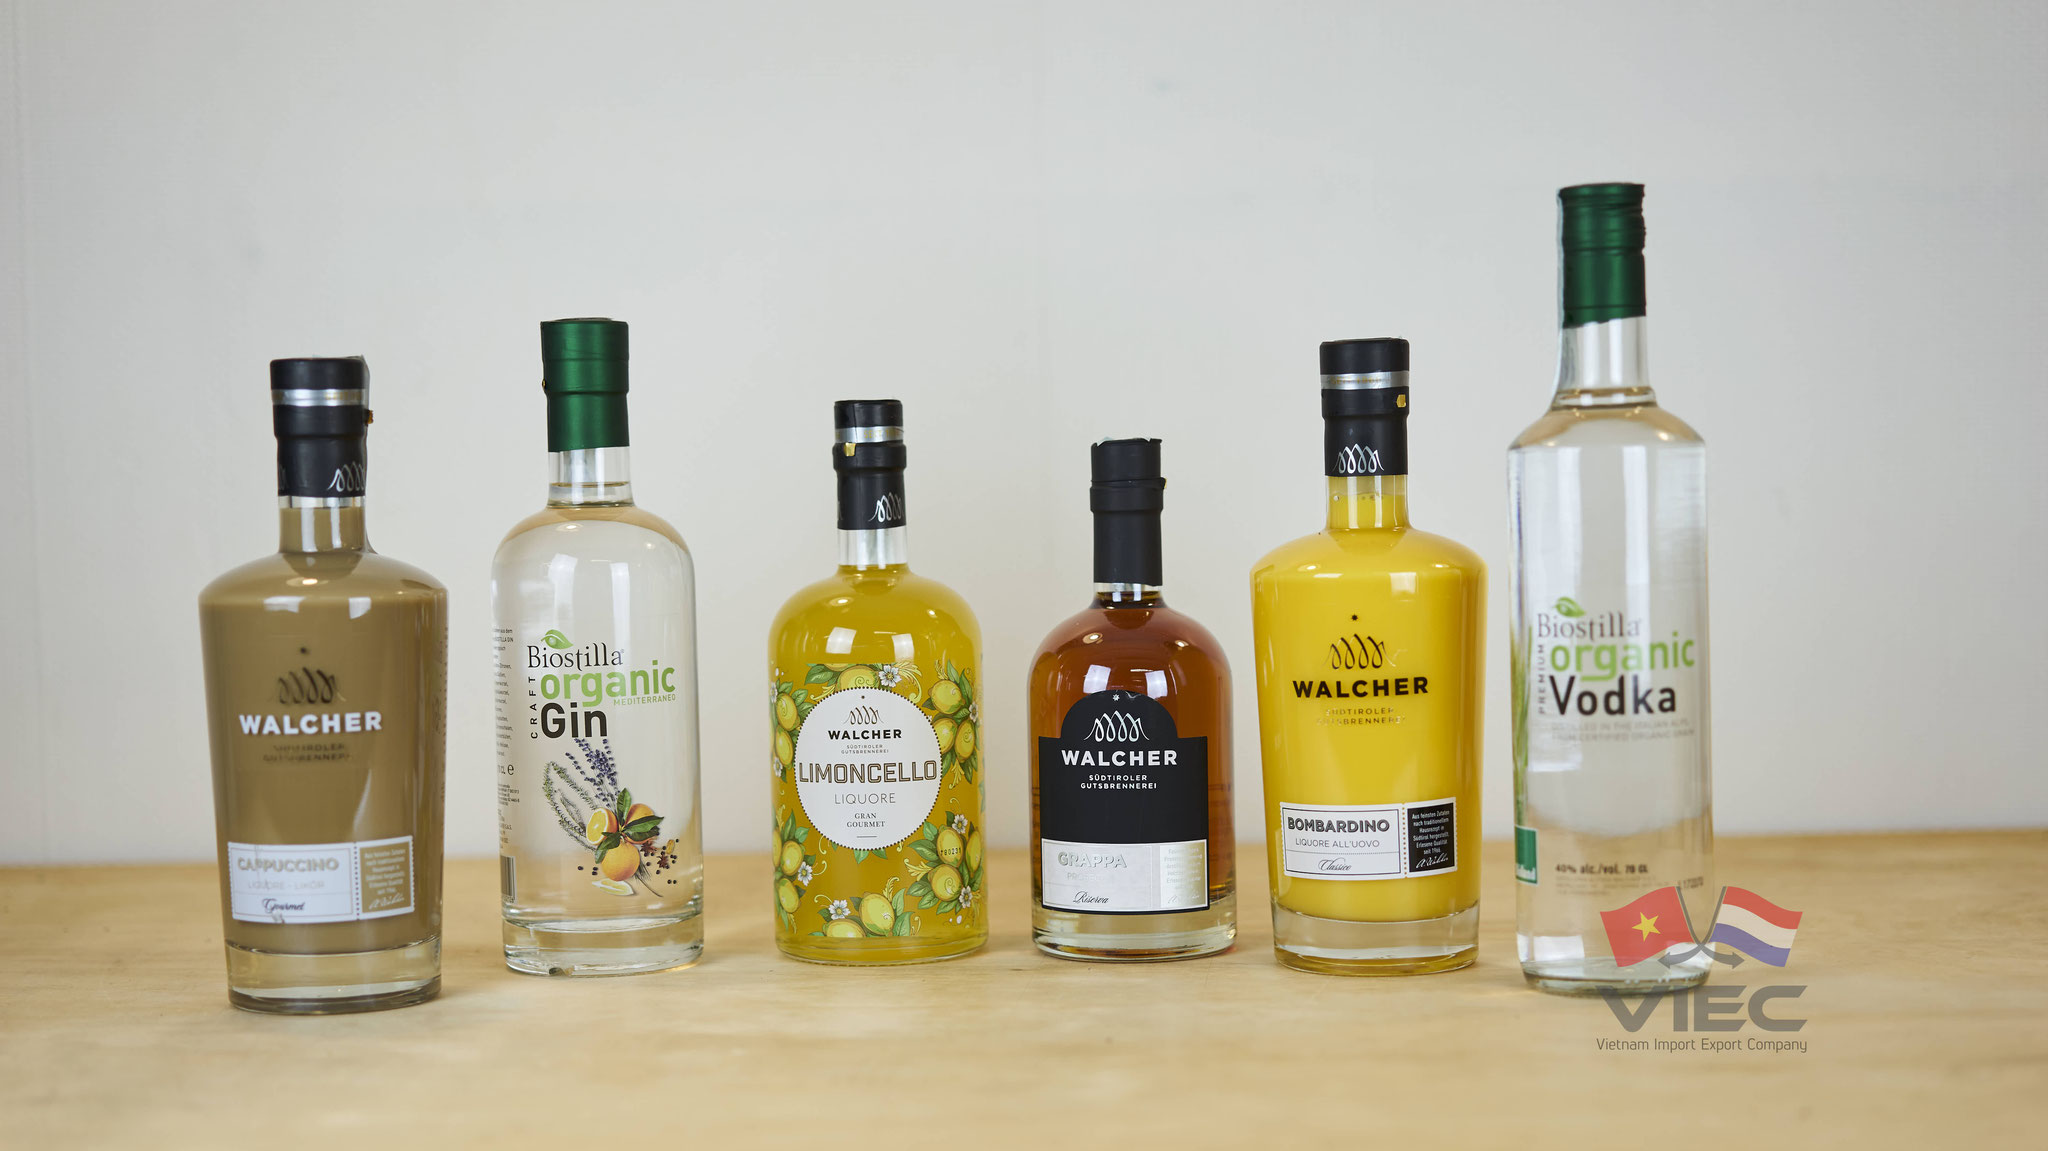 Italian Spirits from Walcher